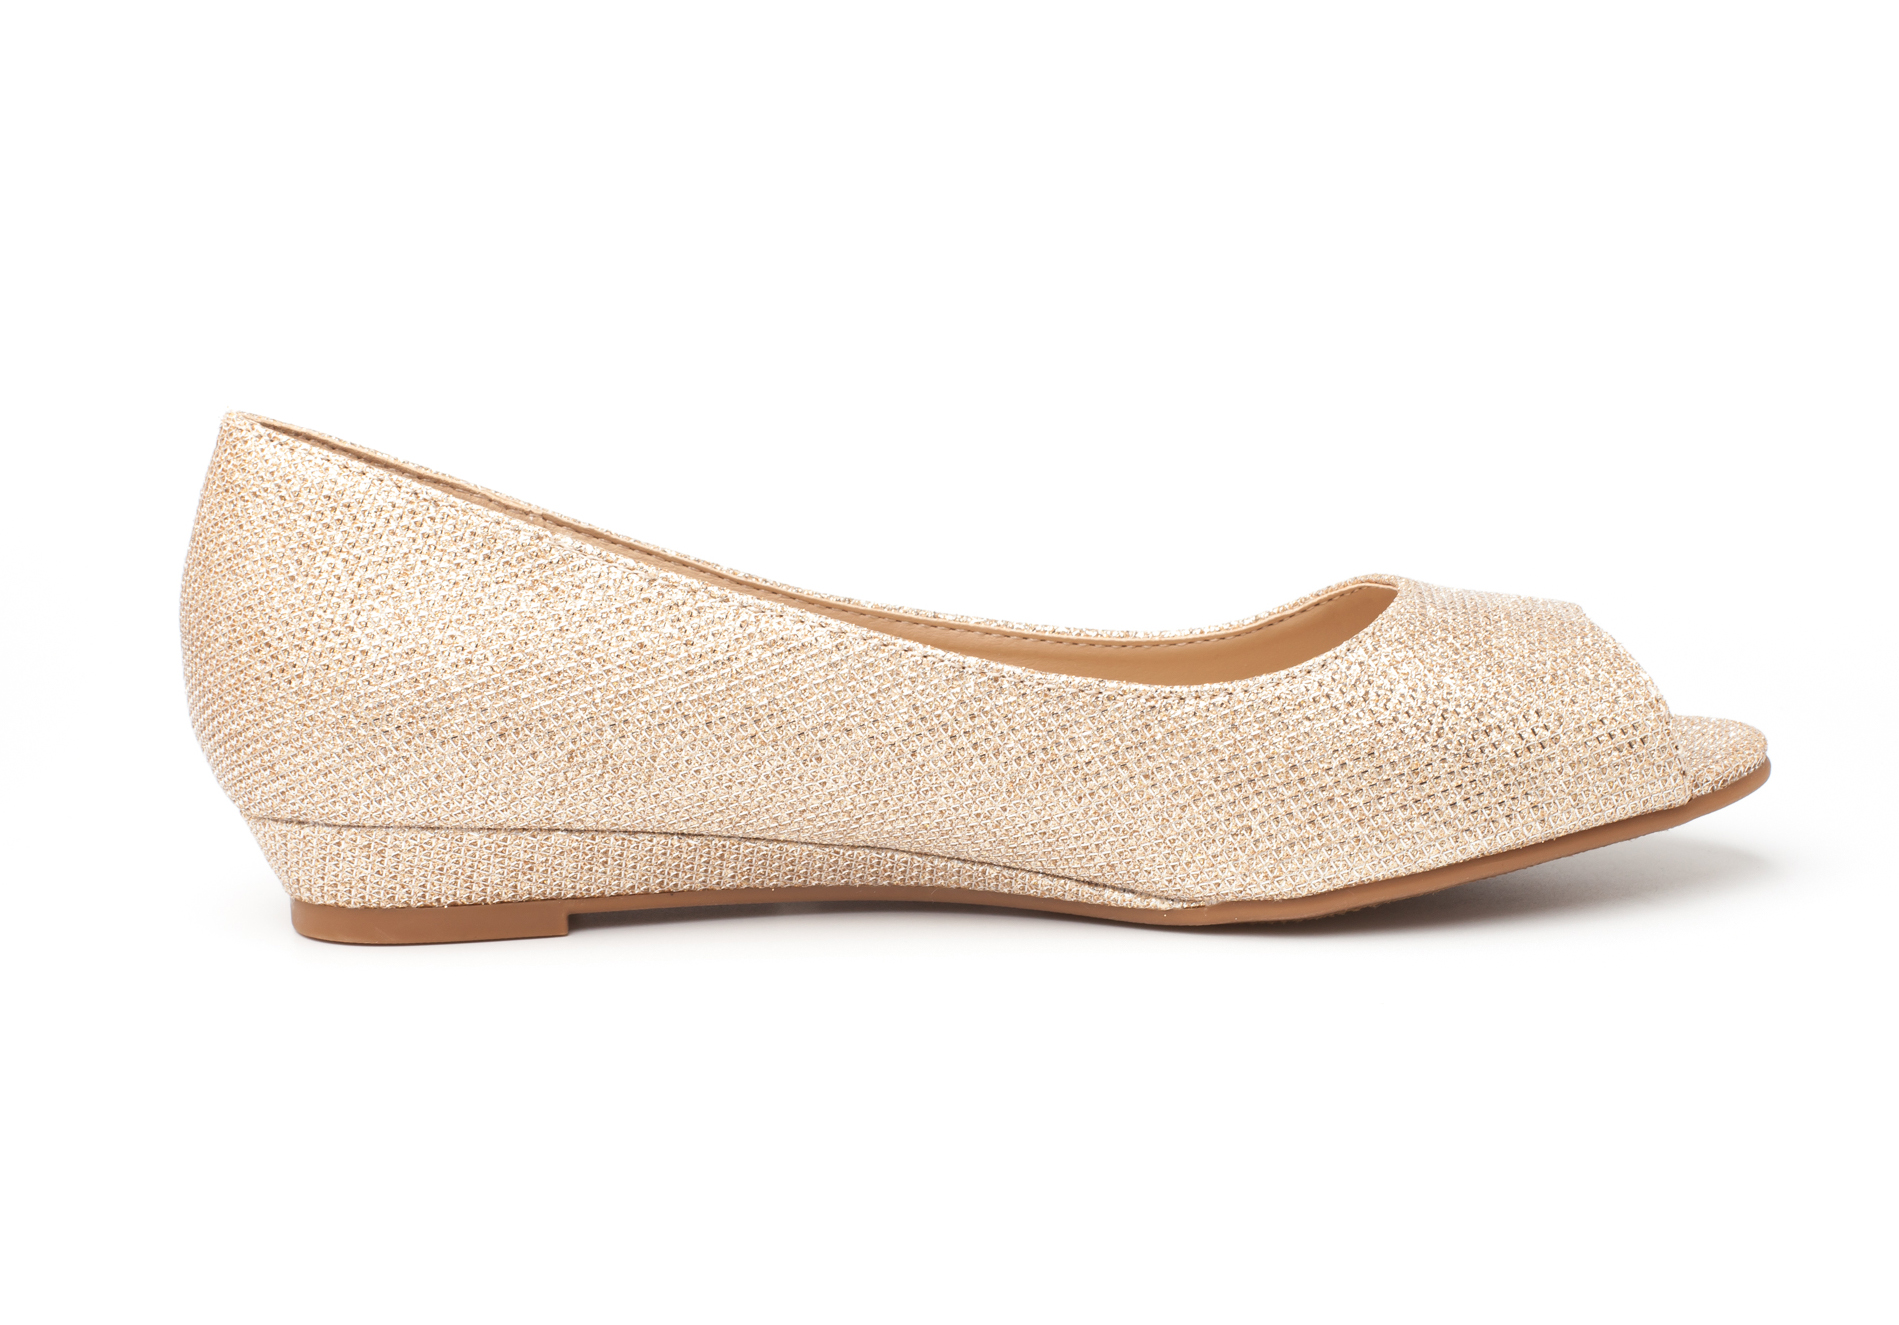 DREAM-PAIRS-Womens-Ballet-Flats-Low-Heel-Open-Toe-Slip-On-Dress-Flat-Shoes thumbnail 20